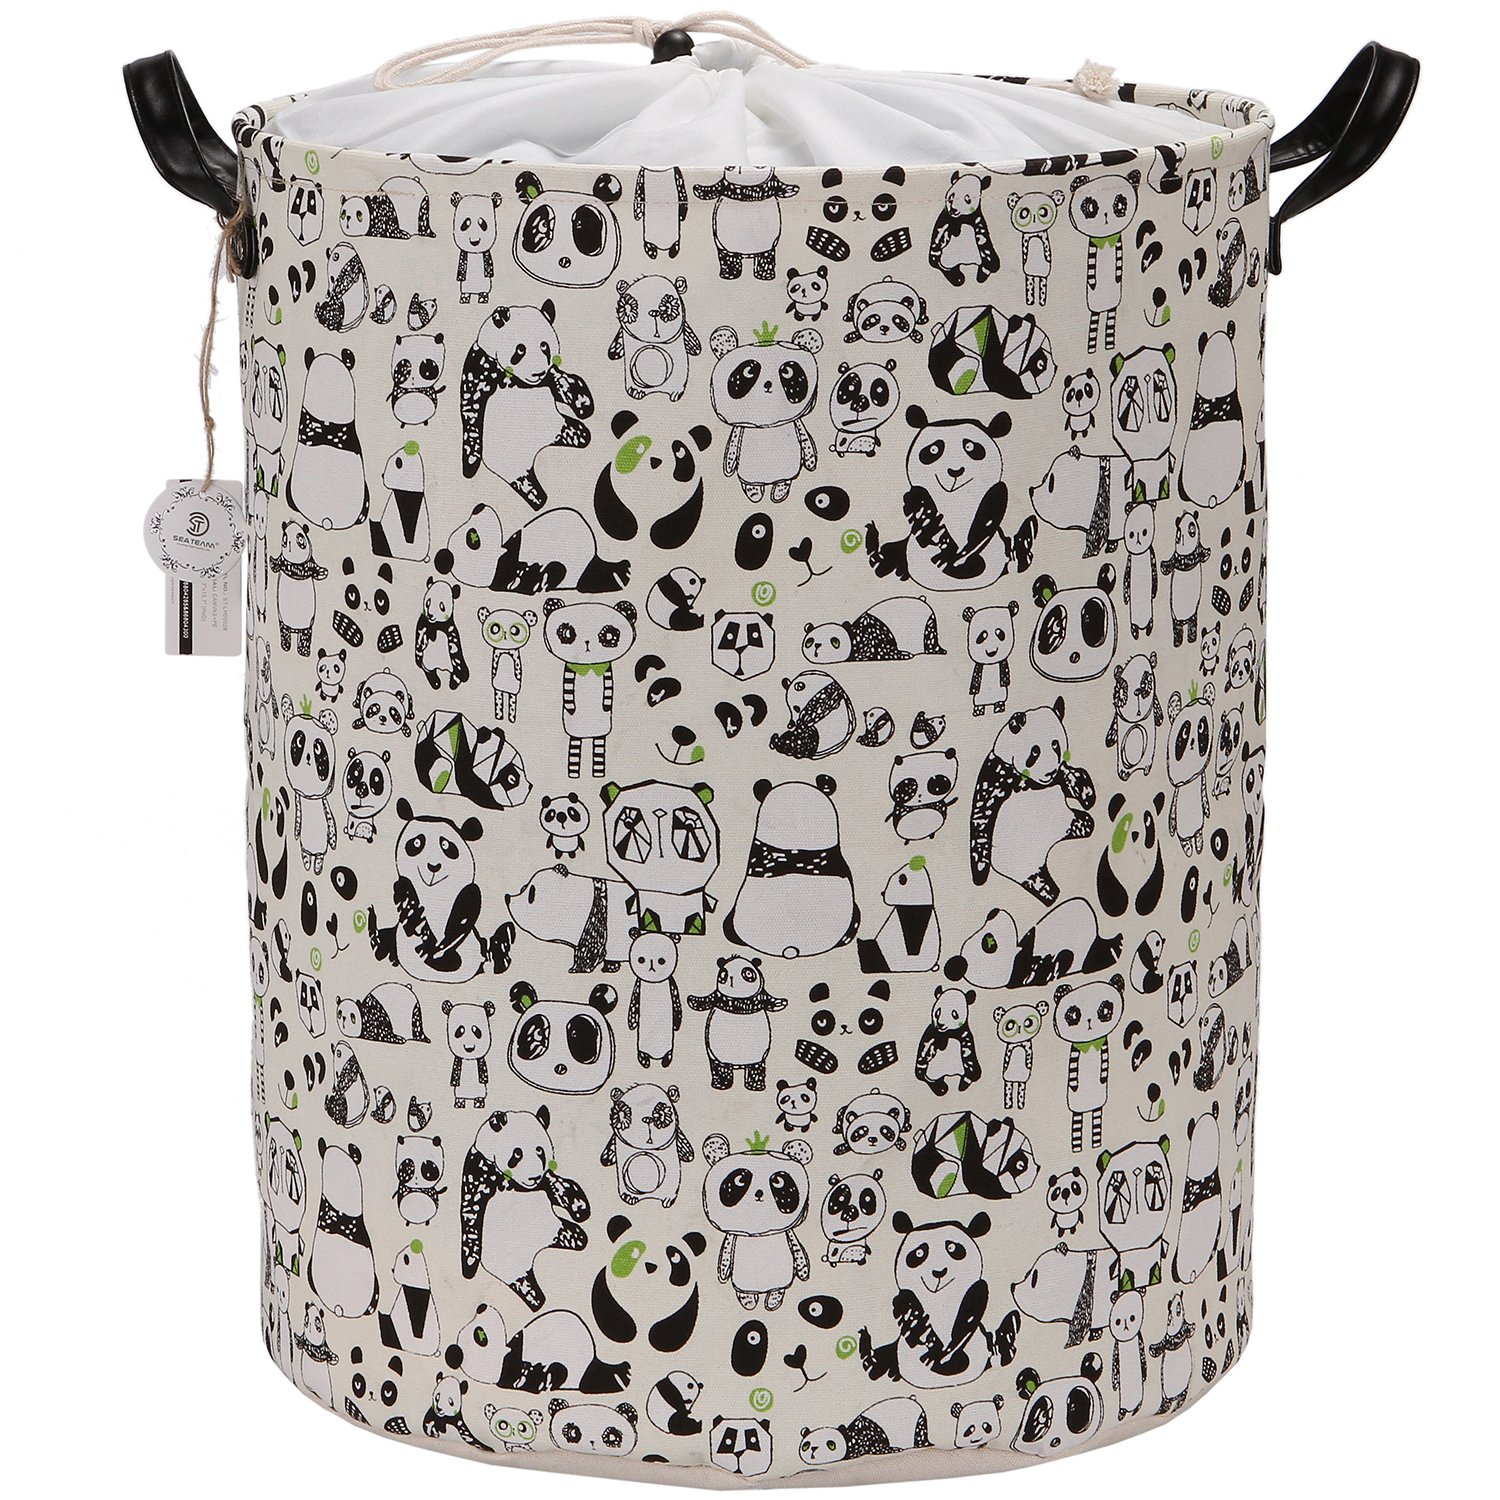 Sea Team Large Size Panda Design Canvas Fabric Laundry Hamper Collapsible Storage Basket with PU Leather Handles and Drawstring Cover for Kid's Room, 19.7 by 15.7 inches, Waterproof Inner